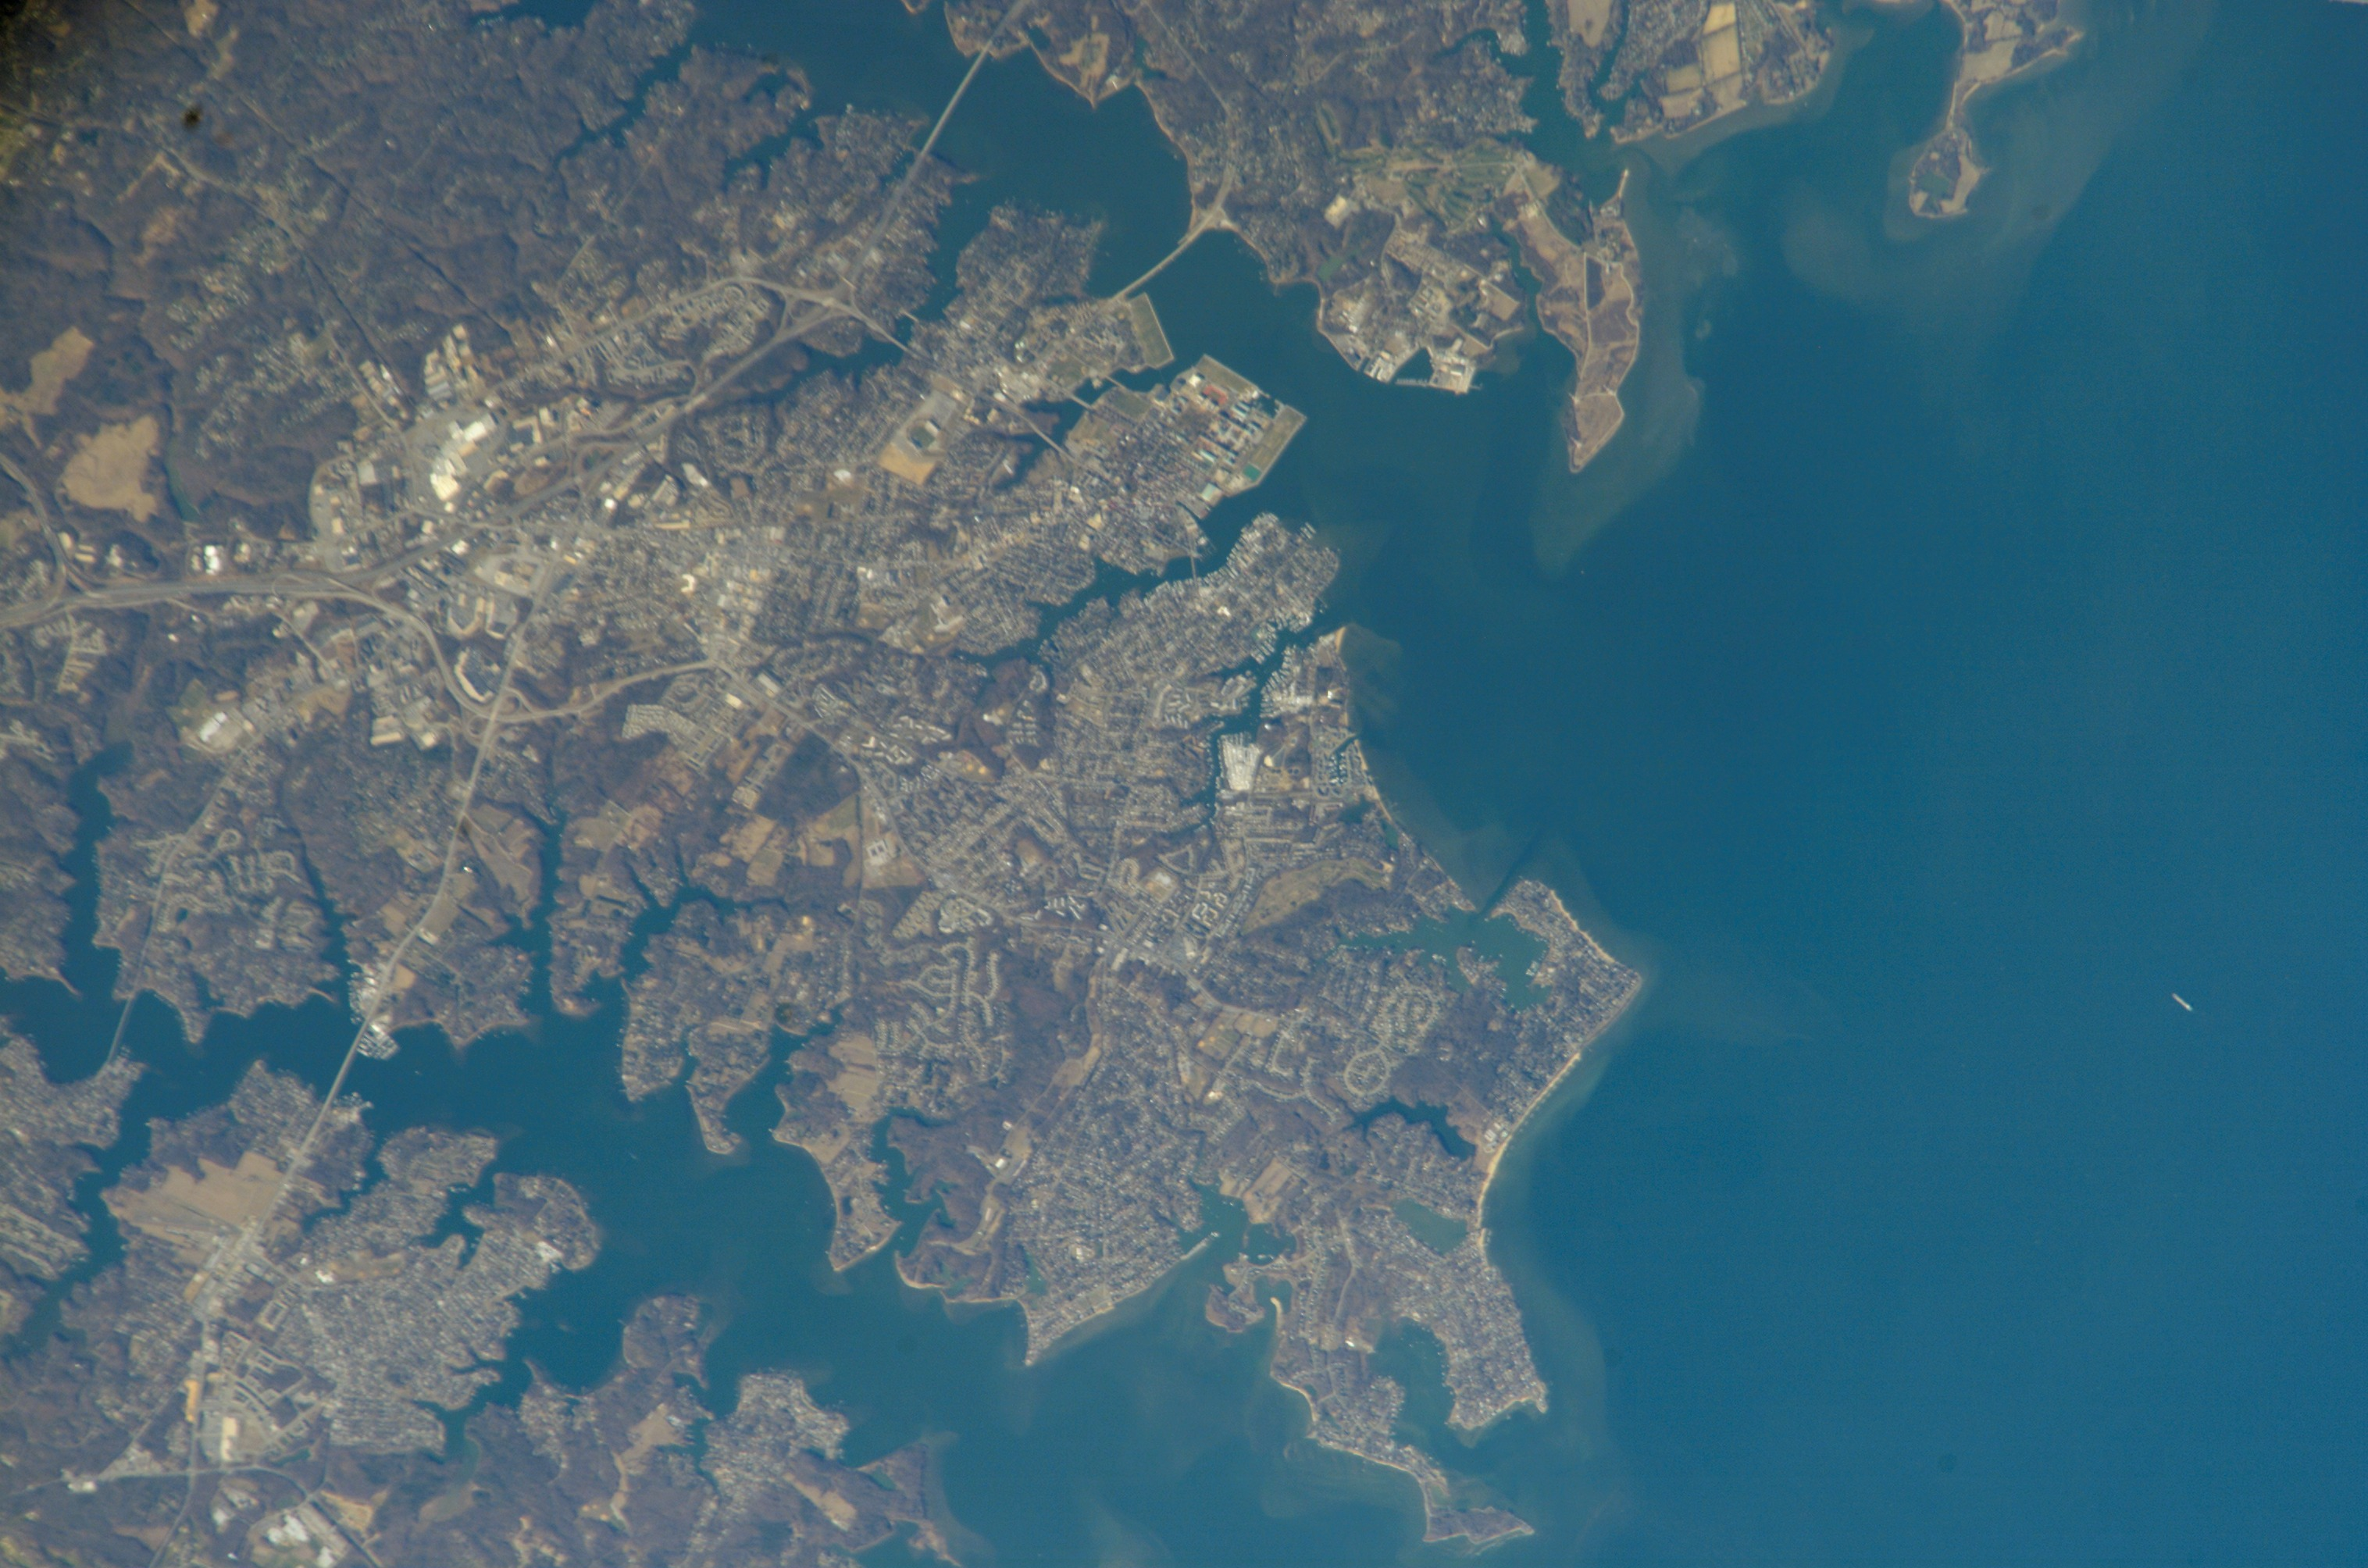 Astronaut Photography of Annapolis Maryland taken from